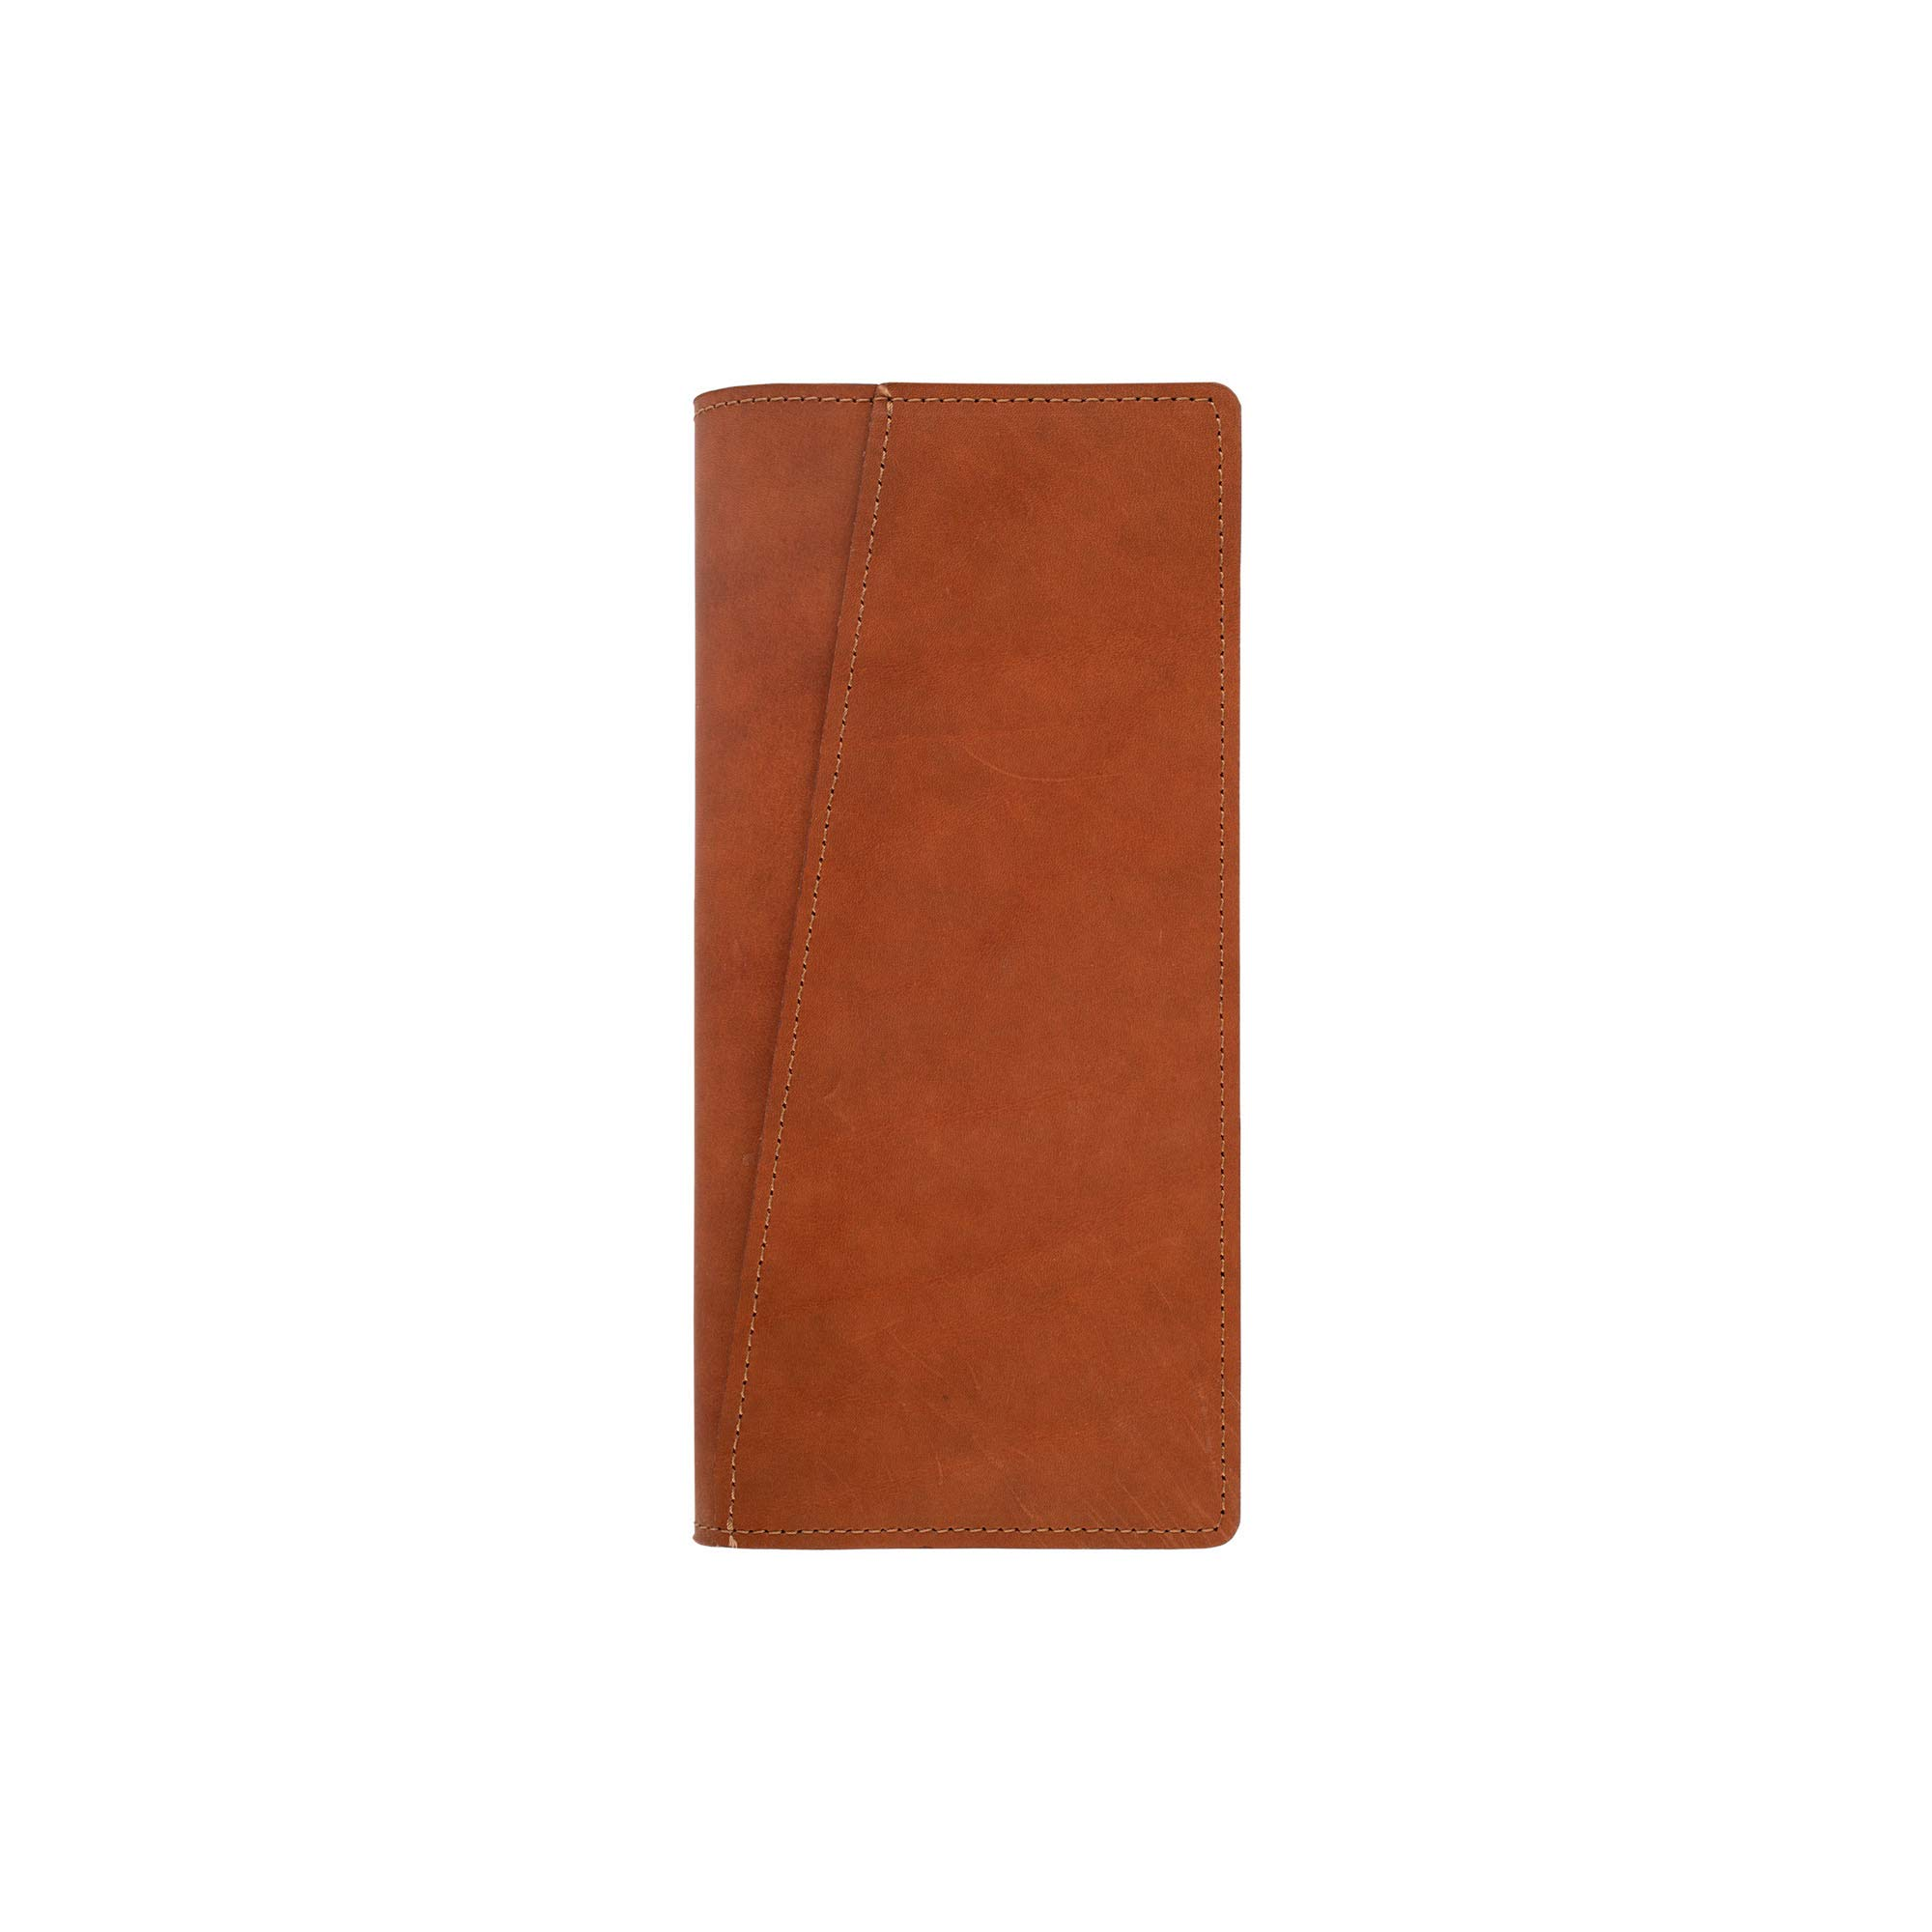 SLATE COLLECTION Lakeway Travel Wallet, Full-grain Leather (Cognac)